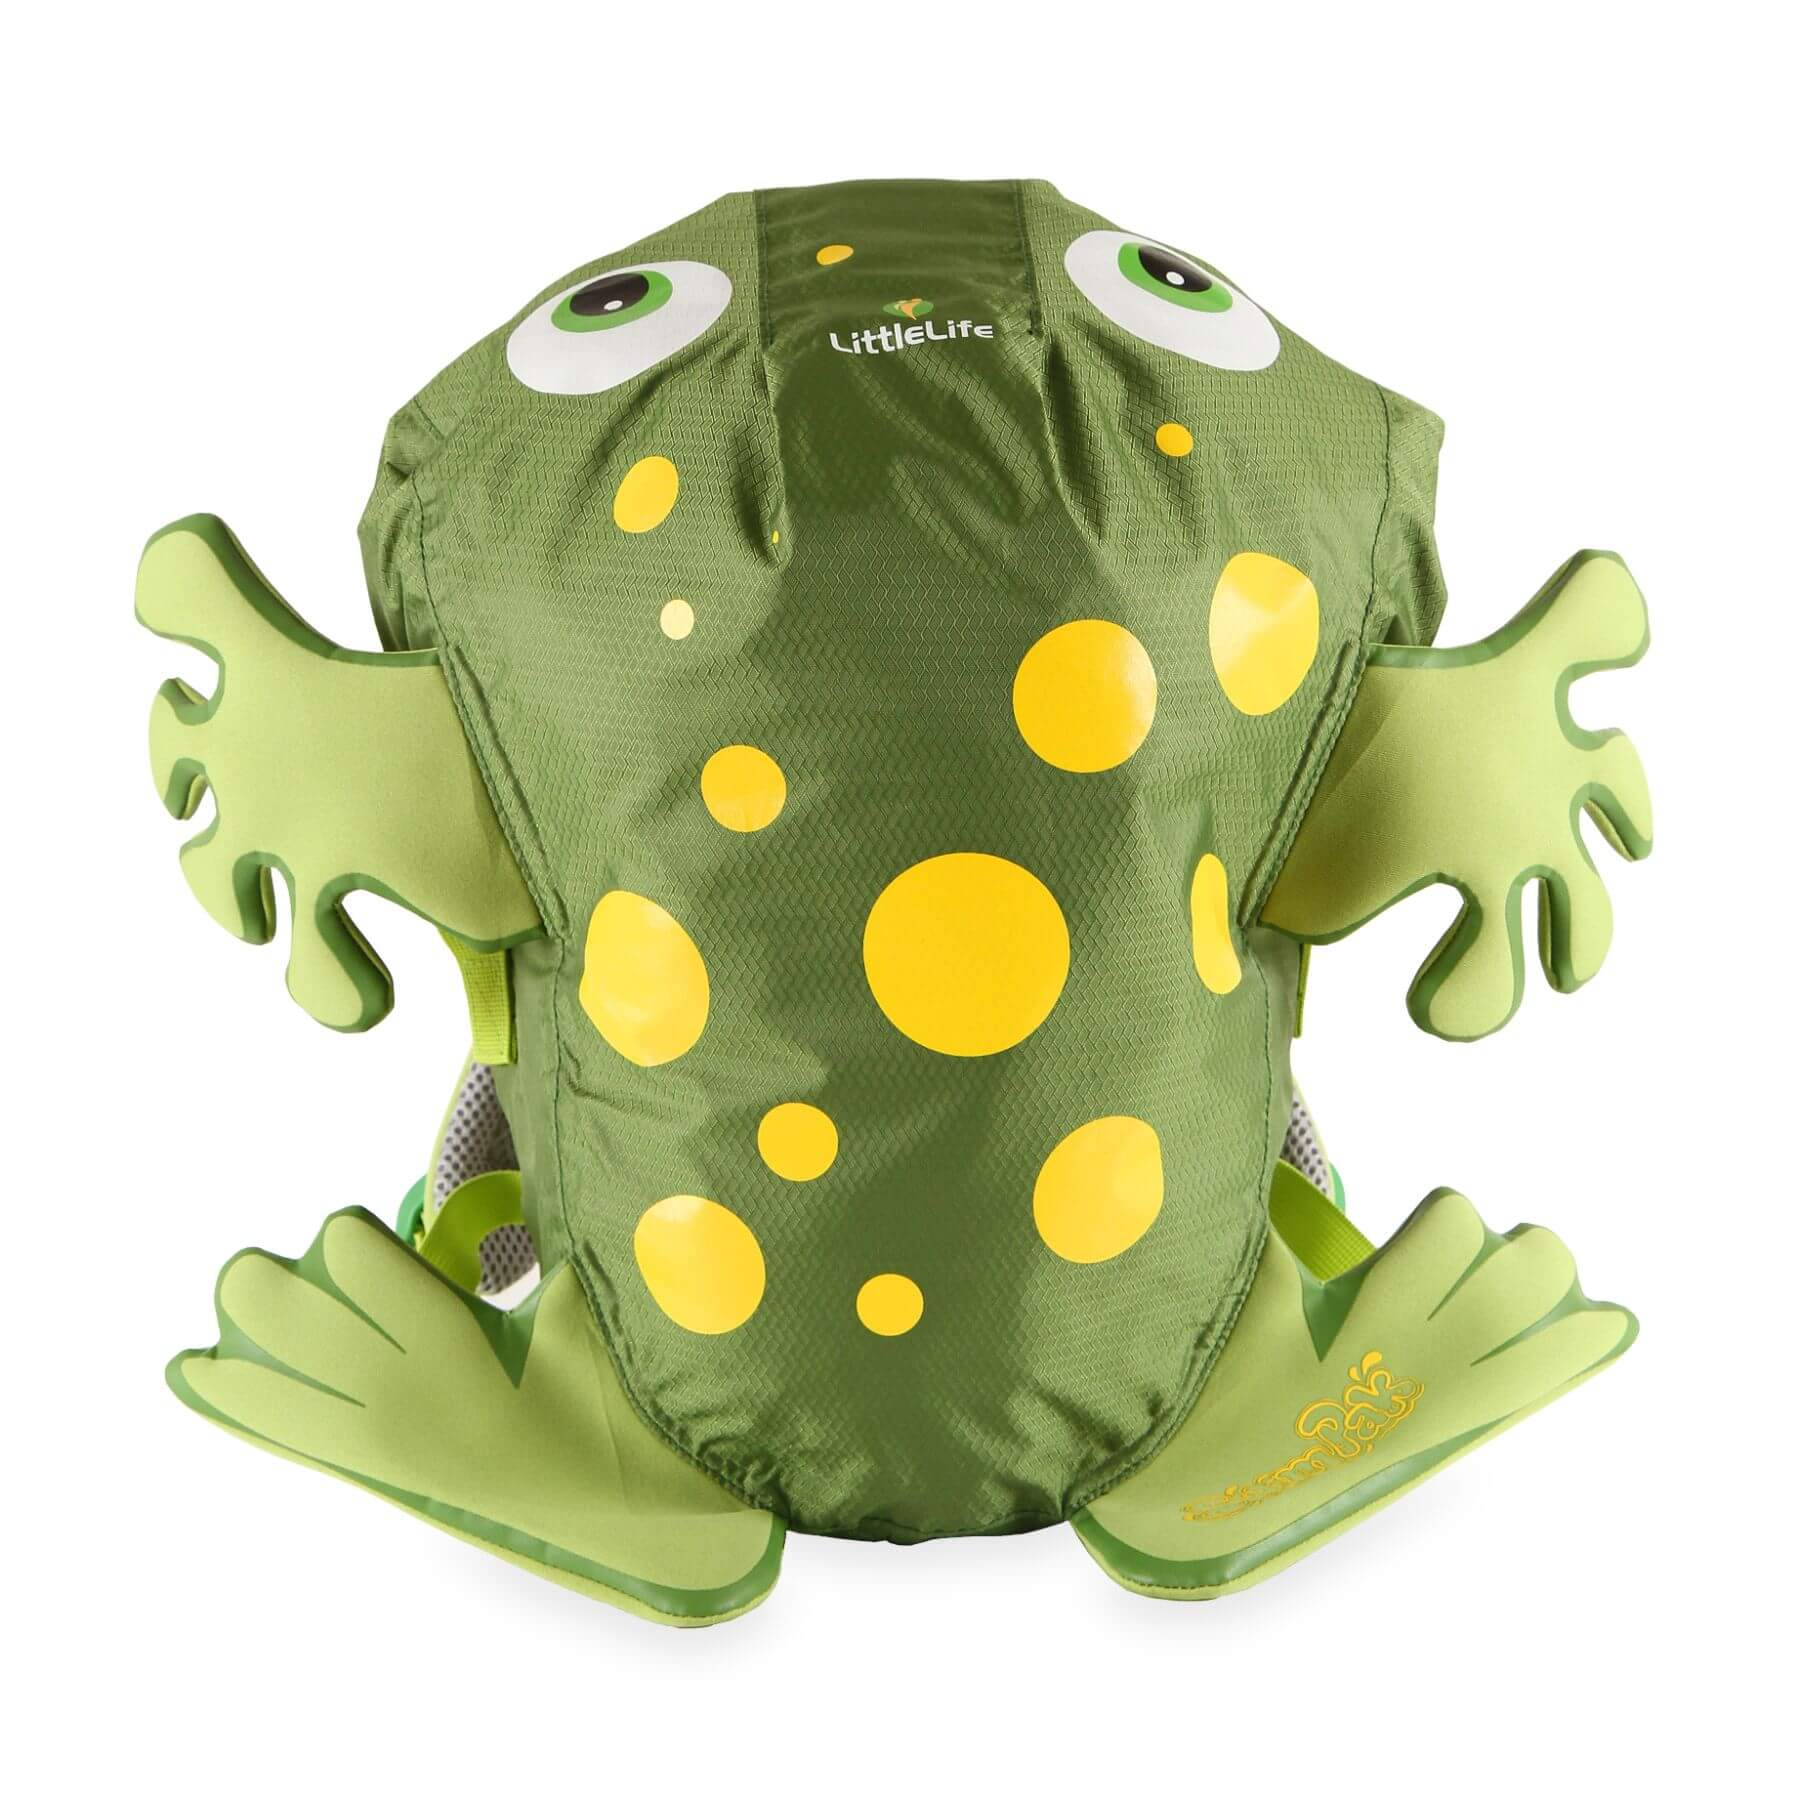 Little Life Animal Kids SwimPak - Green Frog